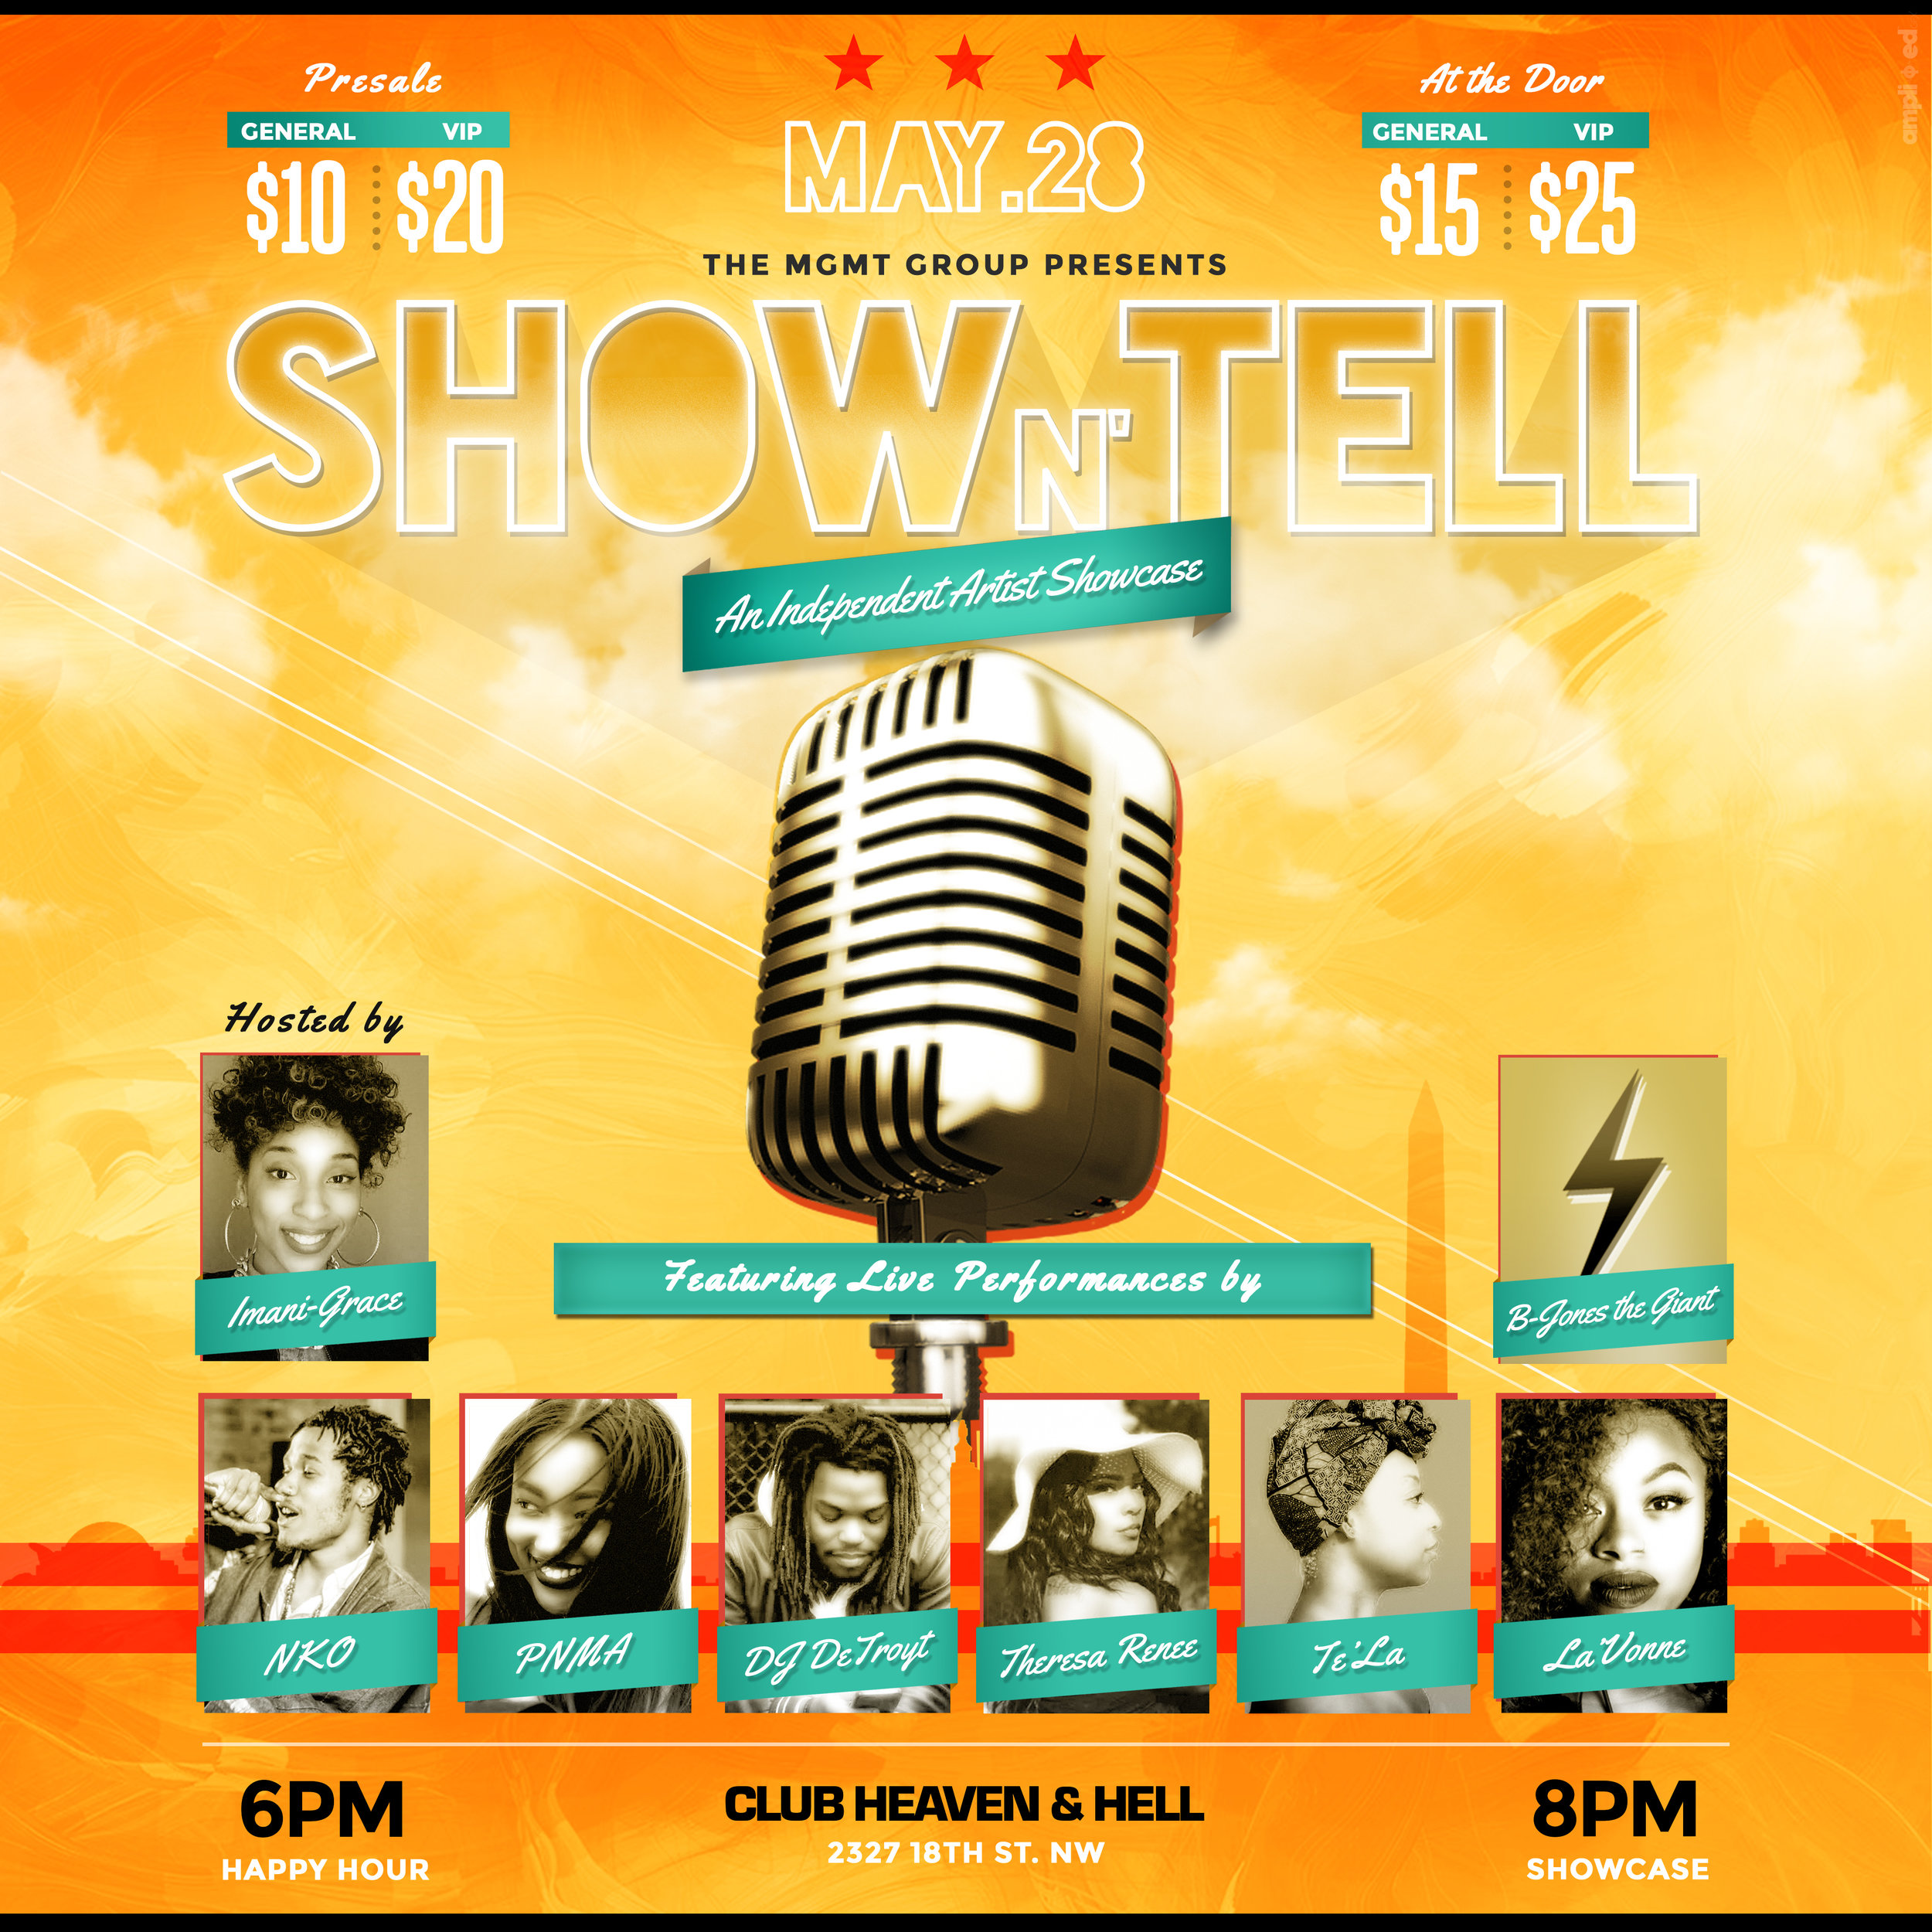 Show N' Tell: An Independent Artist Showcase #IssaVibe